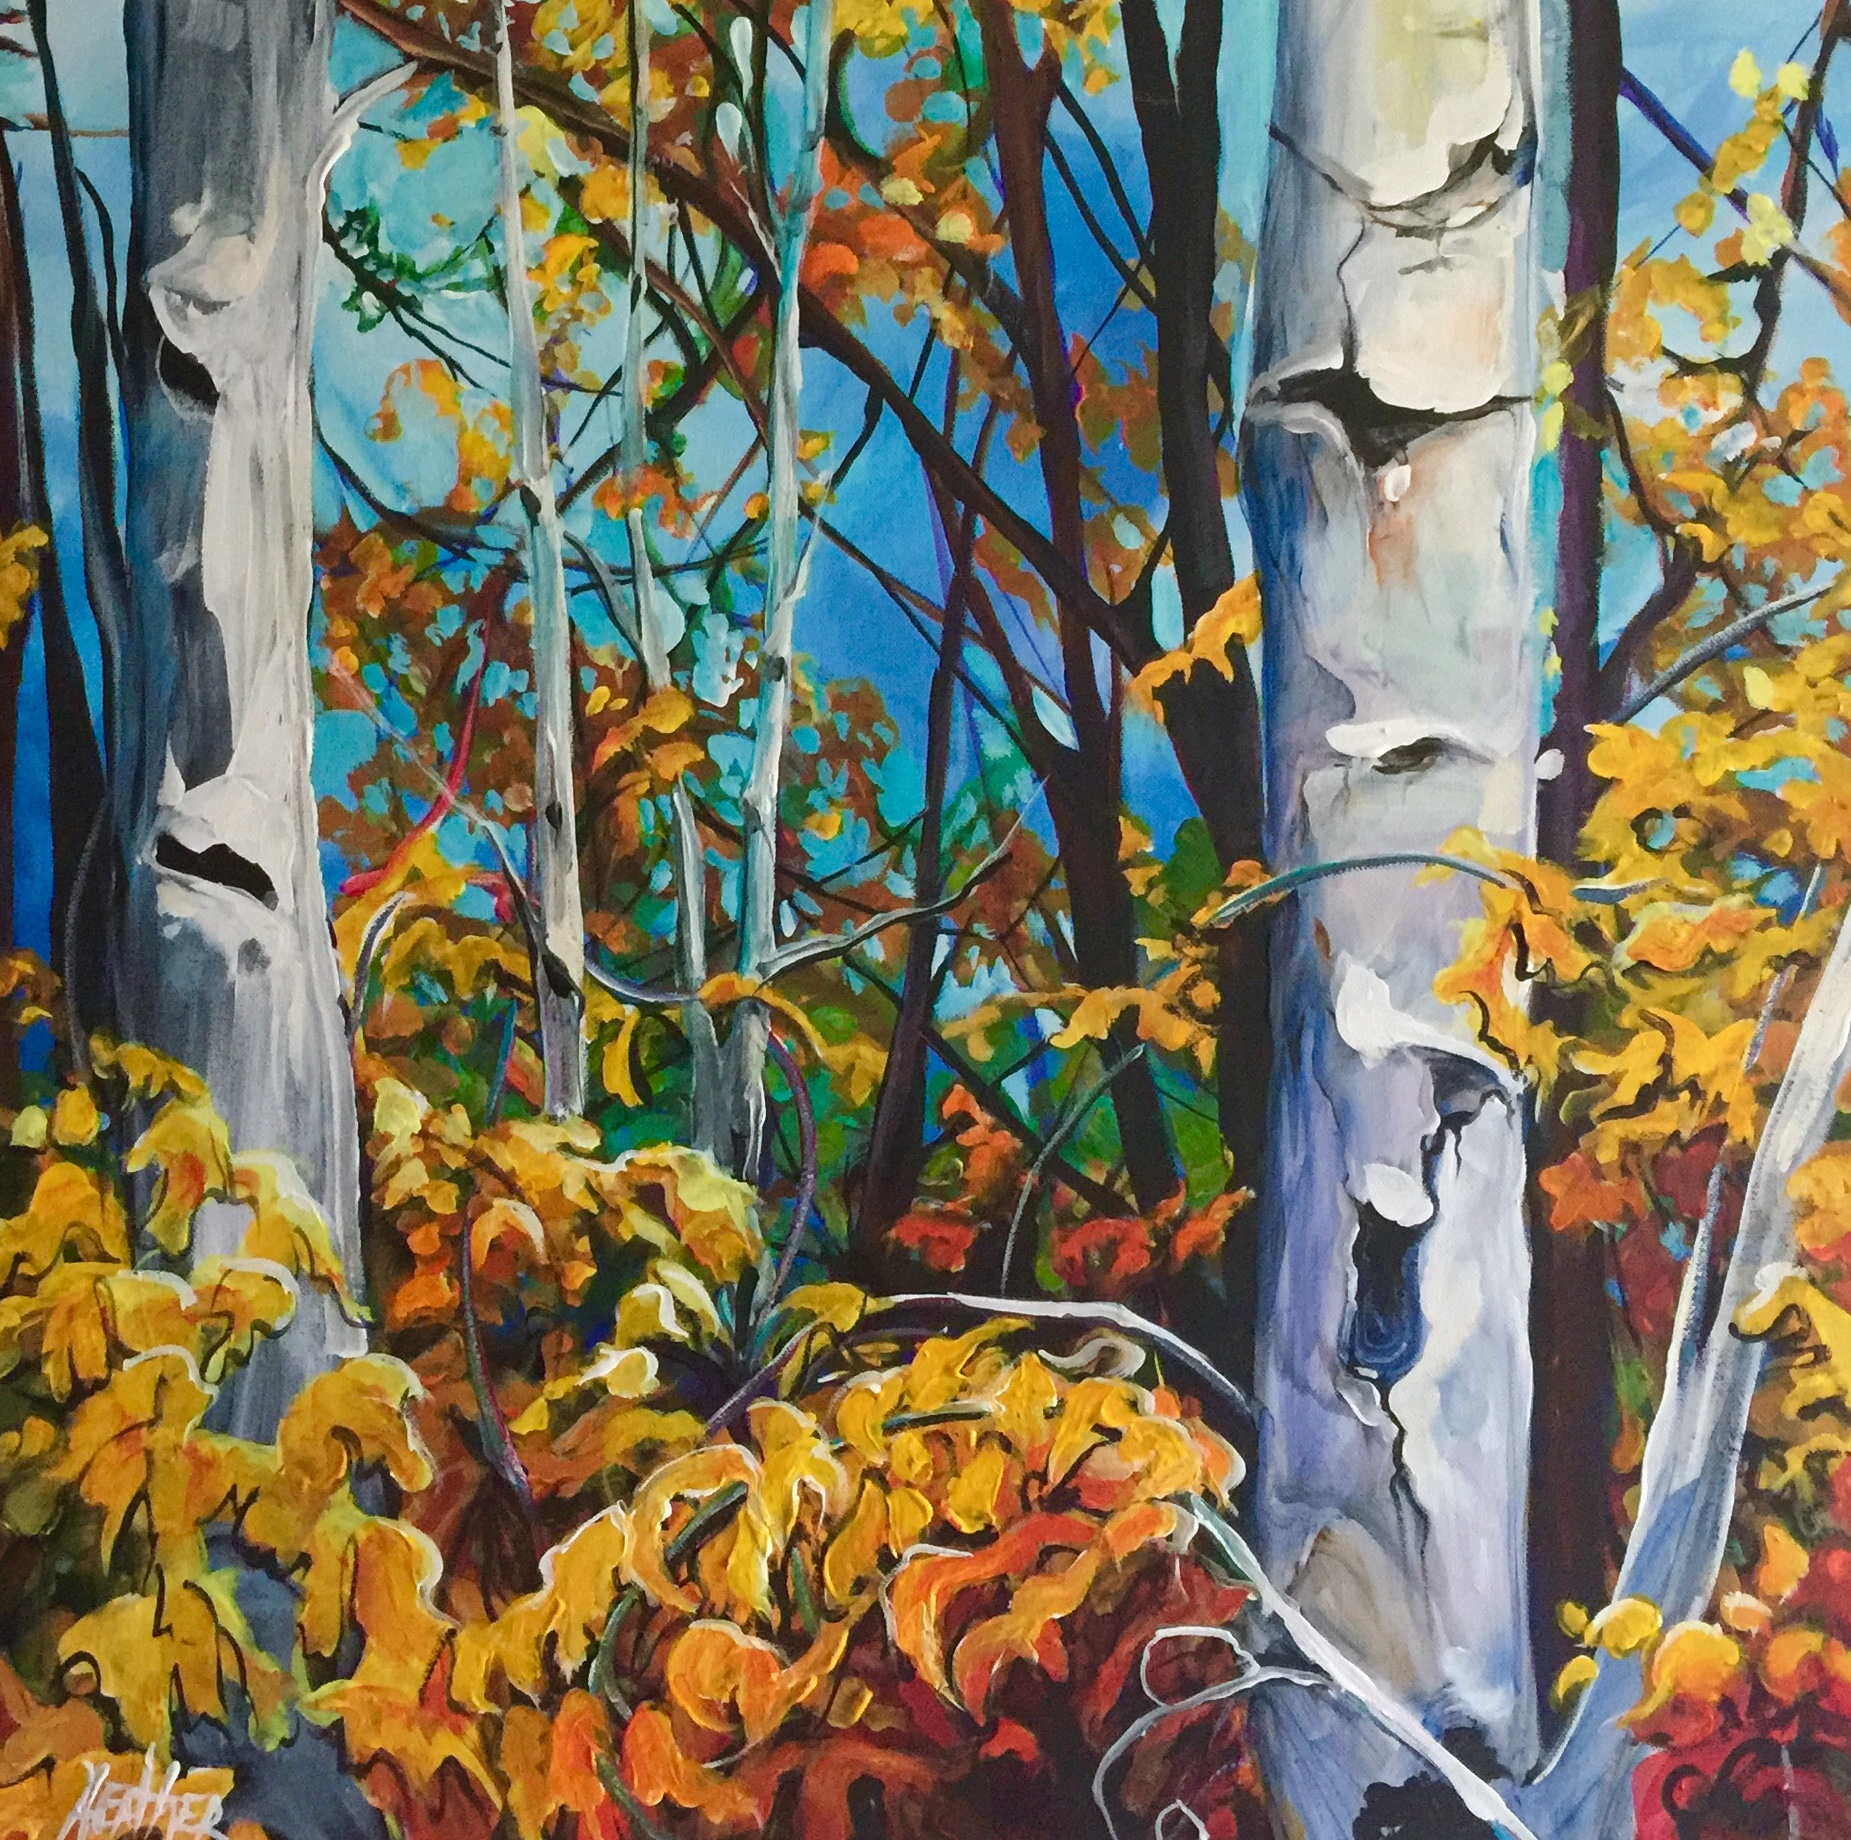 Among the Birch 24 x 24 $1800